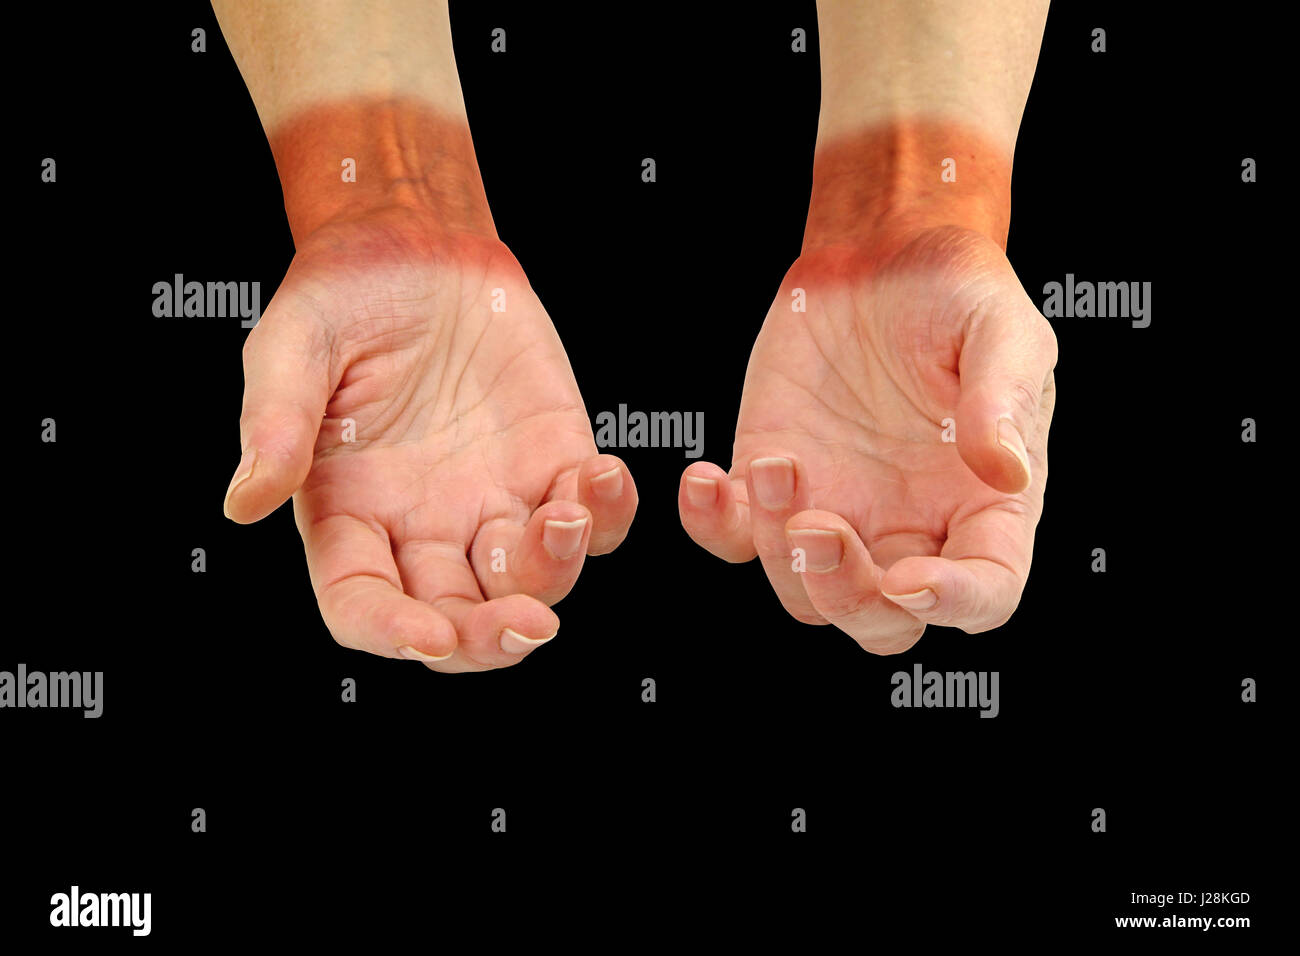 Repetitive Strain Injury Common Pain Areas - wrist and hand palms facing up showing painful redness across wrist - Stock Image